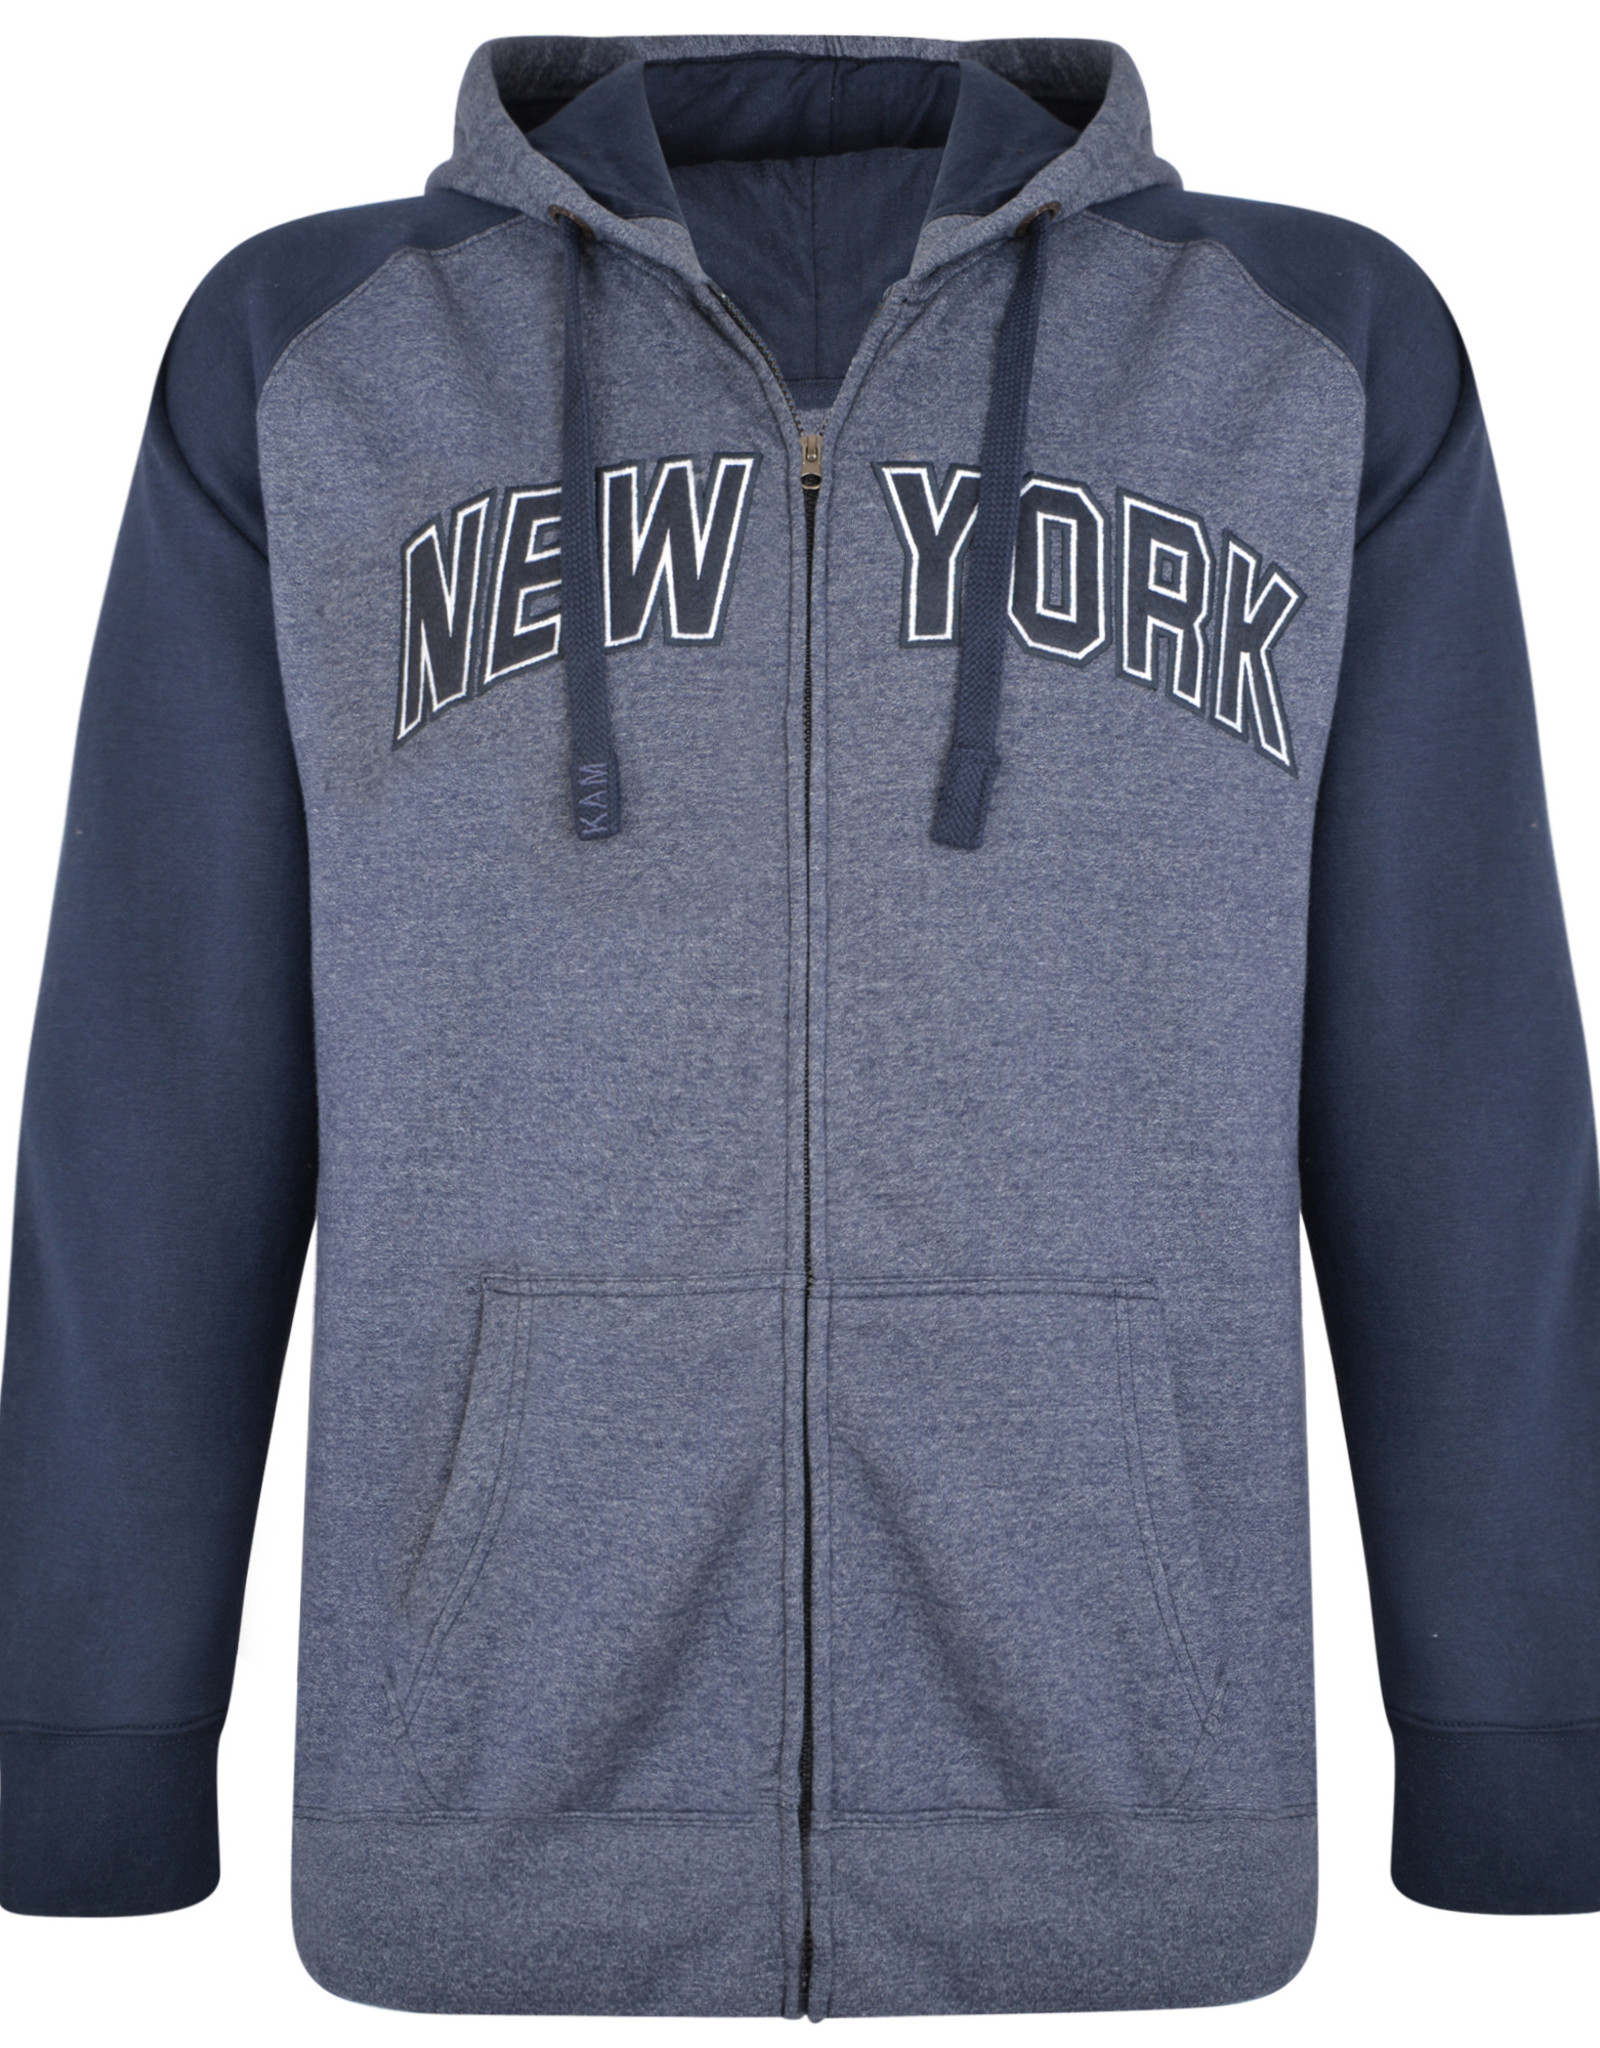 Kam Jeans SWEATVEST met borduring 'New York' denim